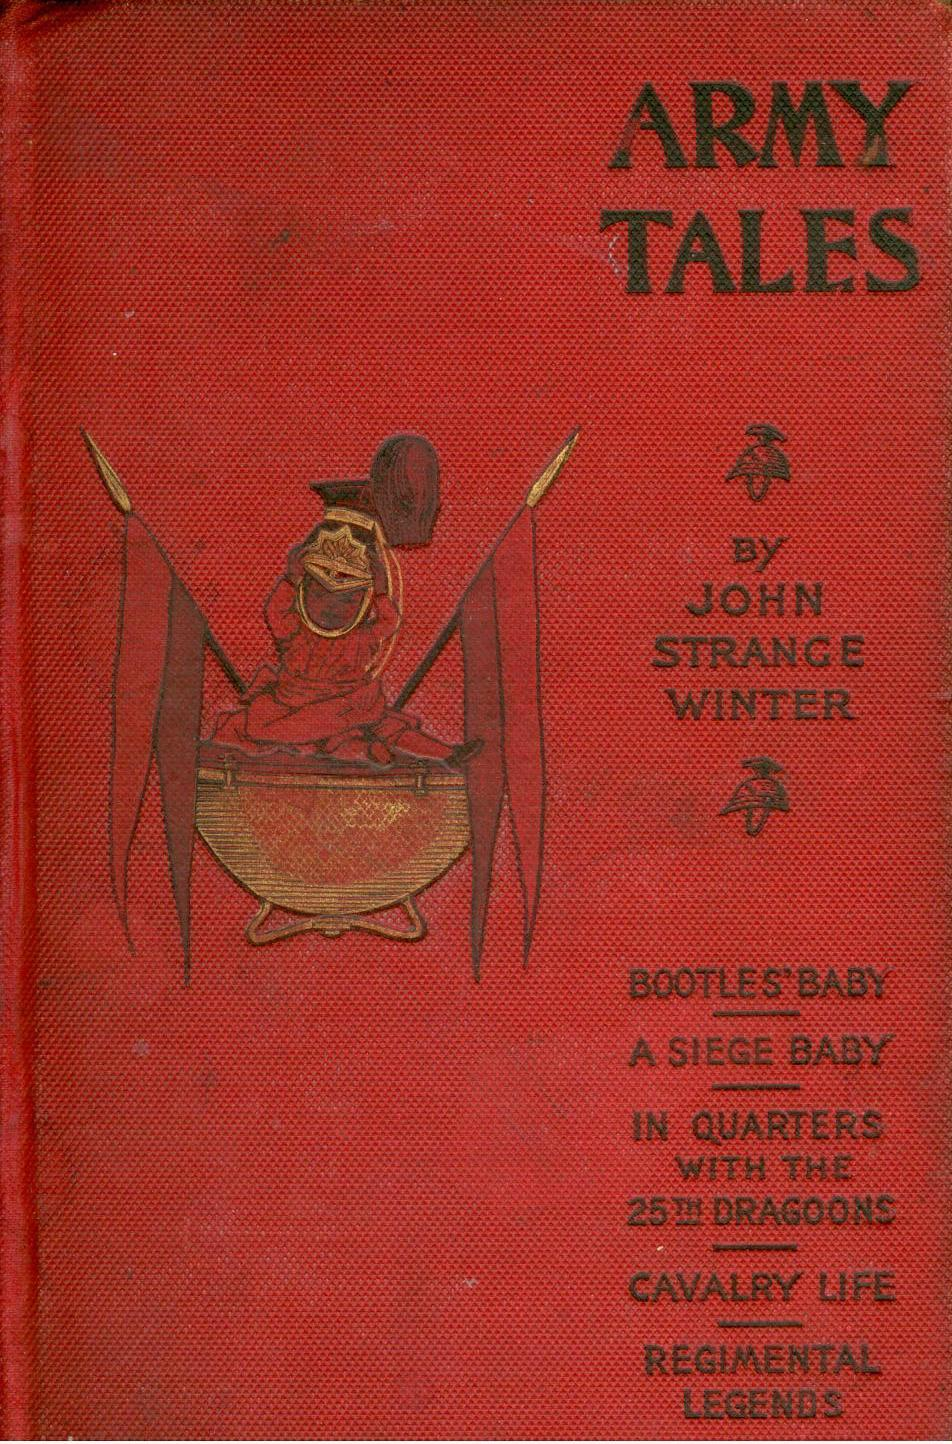 Army Tales; Bootles' Baby, A Siege Baby, In Quarters with the 25th Dragoons, Cavalry Life, Regimental Legends